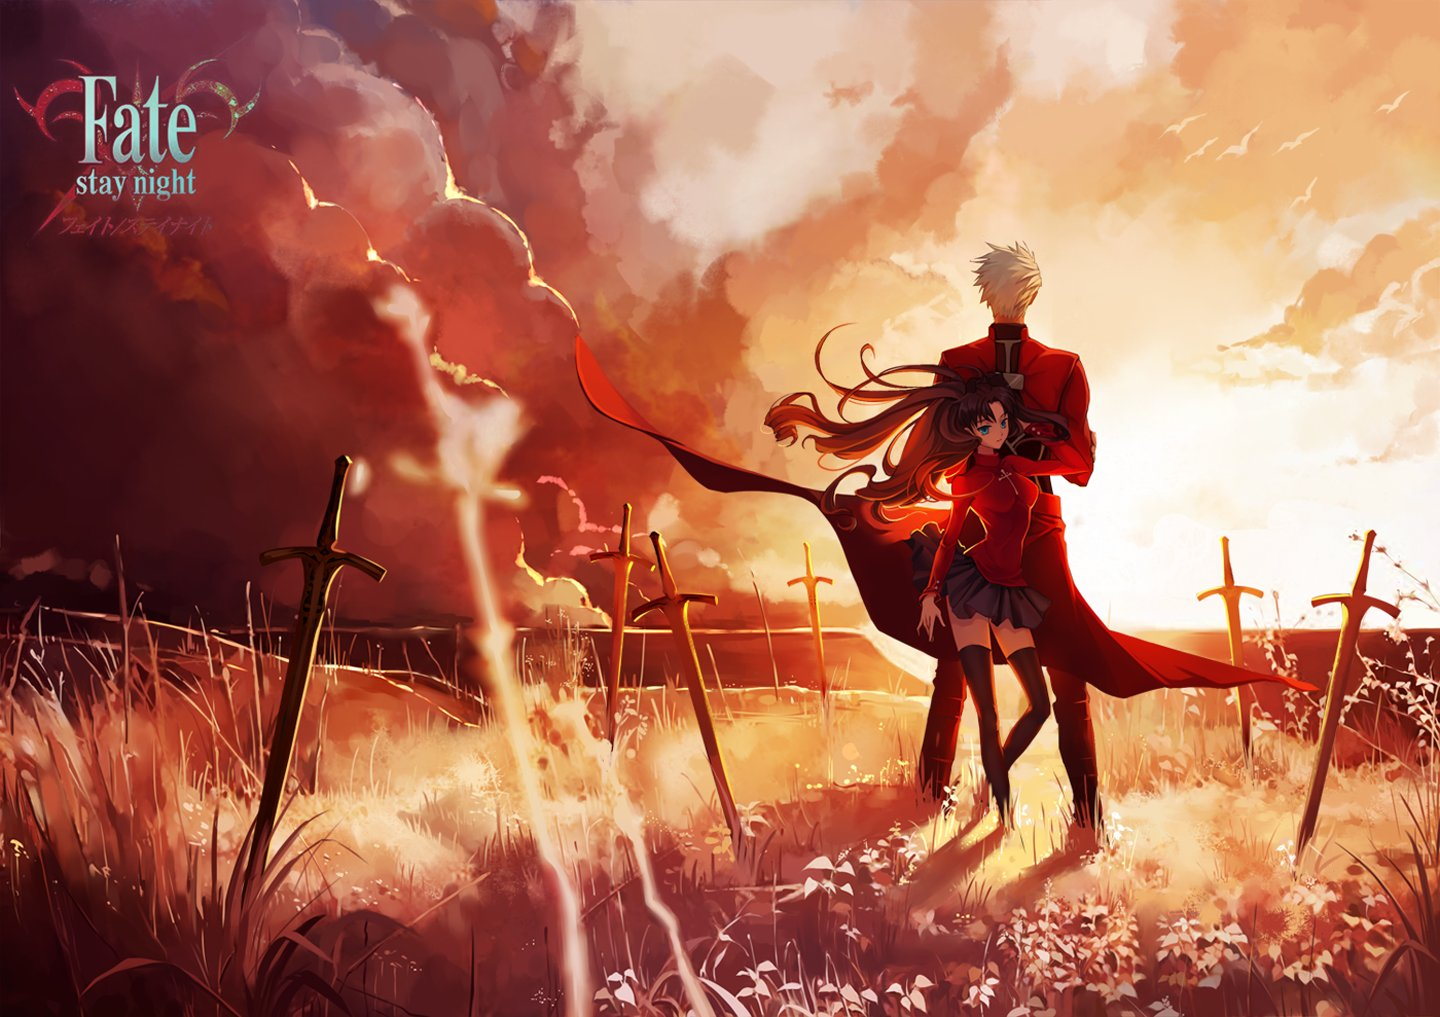 Fate stay night moon toosaka rin archer qinshou anime series swords wallpaper 1440x1017 - Fate stay night wallpaper ...